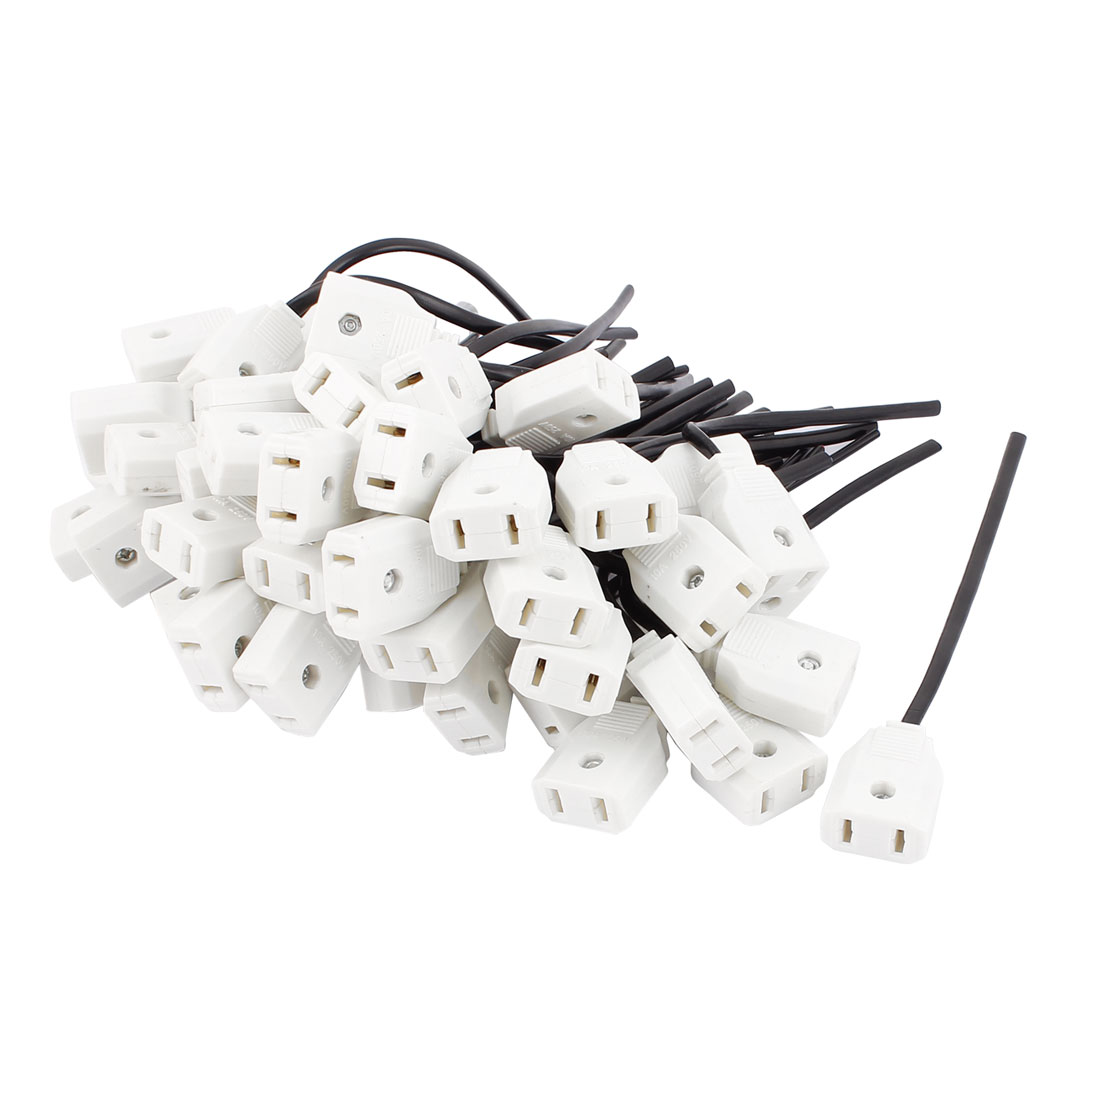 50Pcs 2Pin Power Adapter Female Rewirable Connector Socket Wire Length 14CM